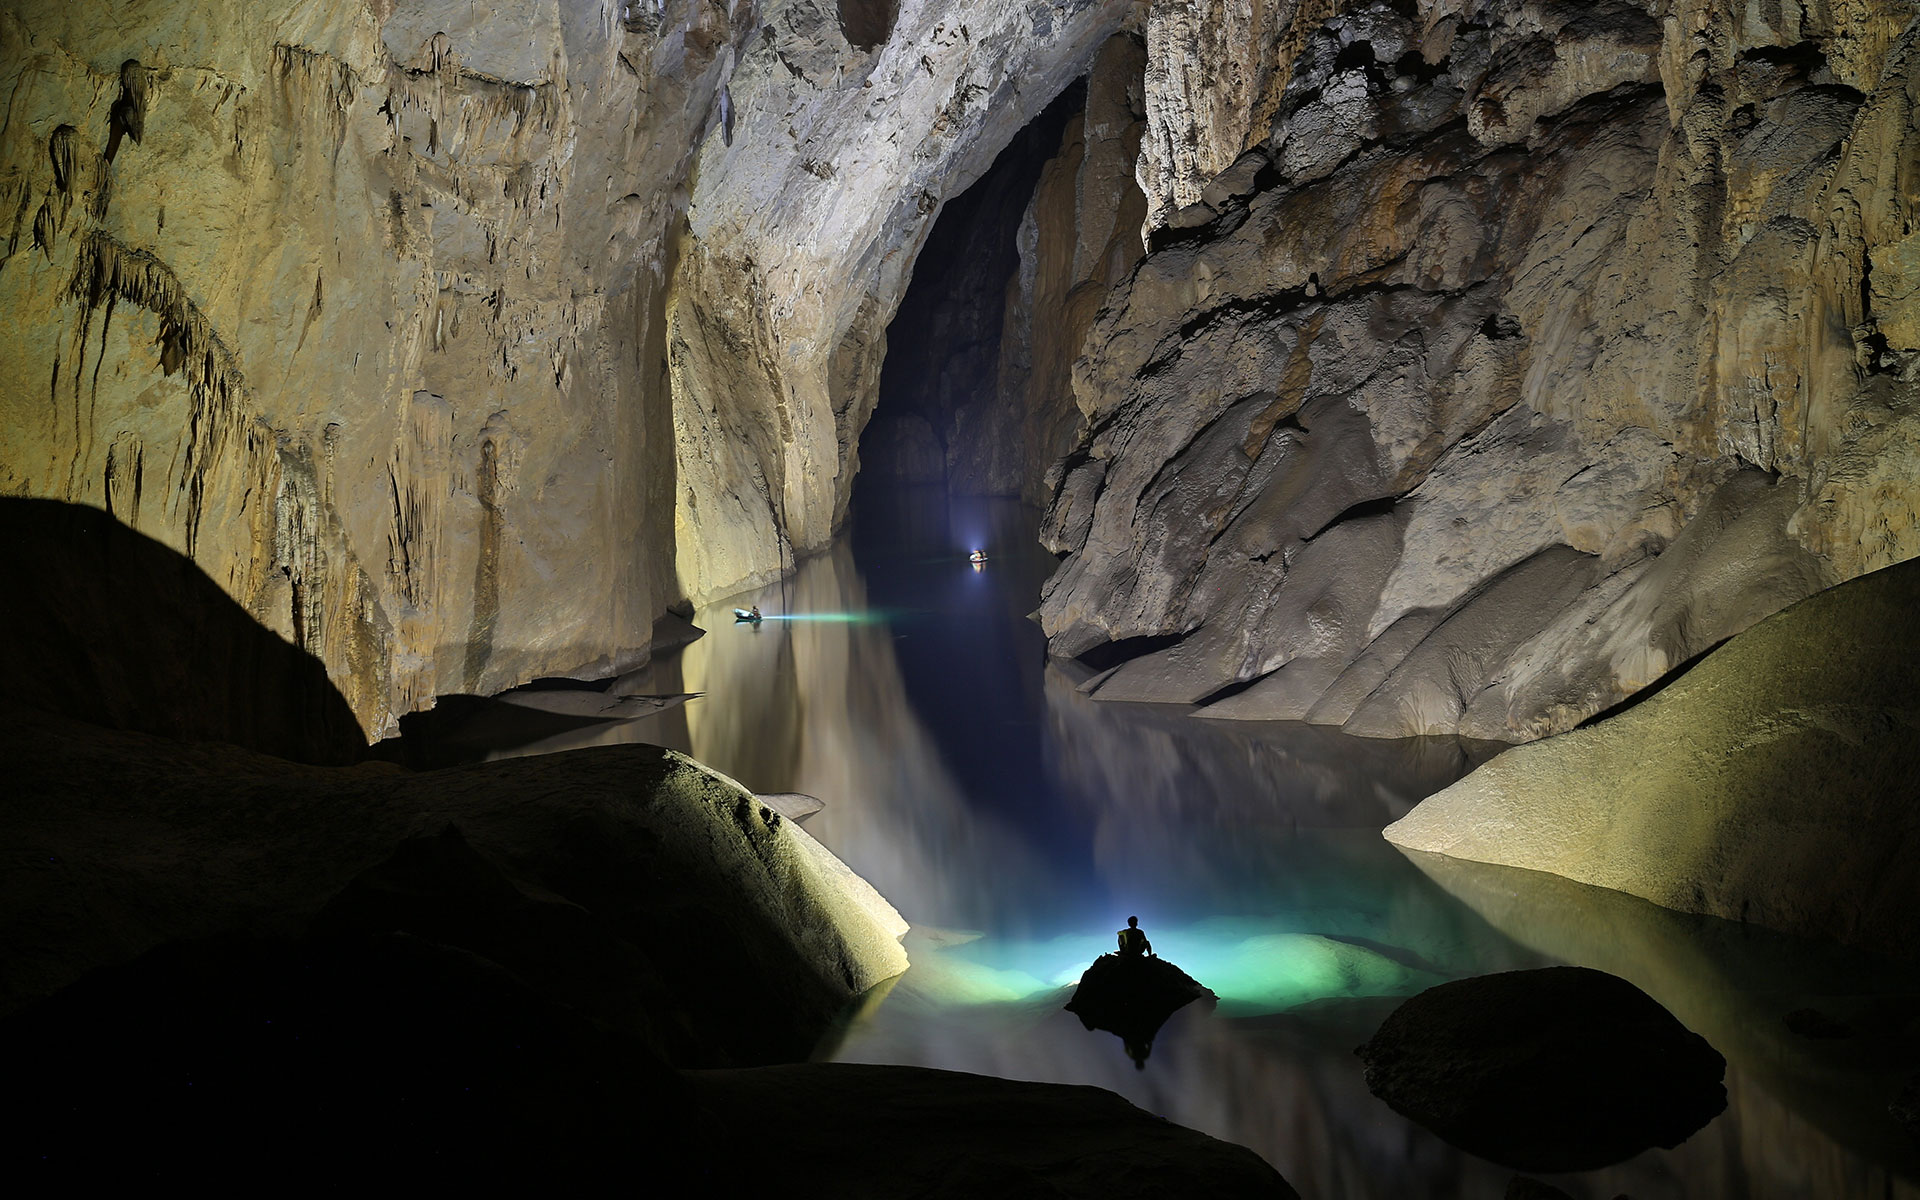 Underground river near the Great Wall